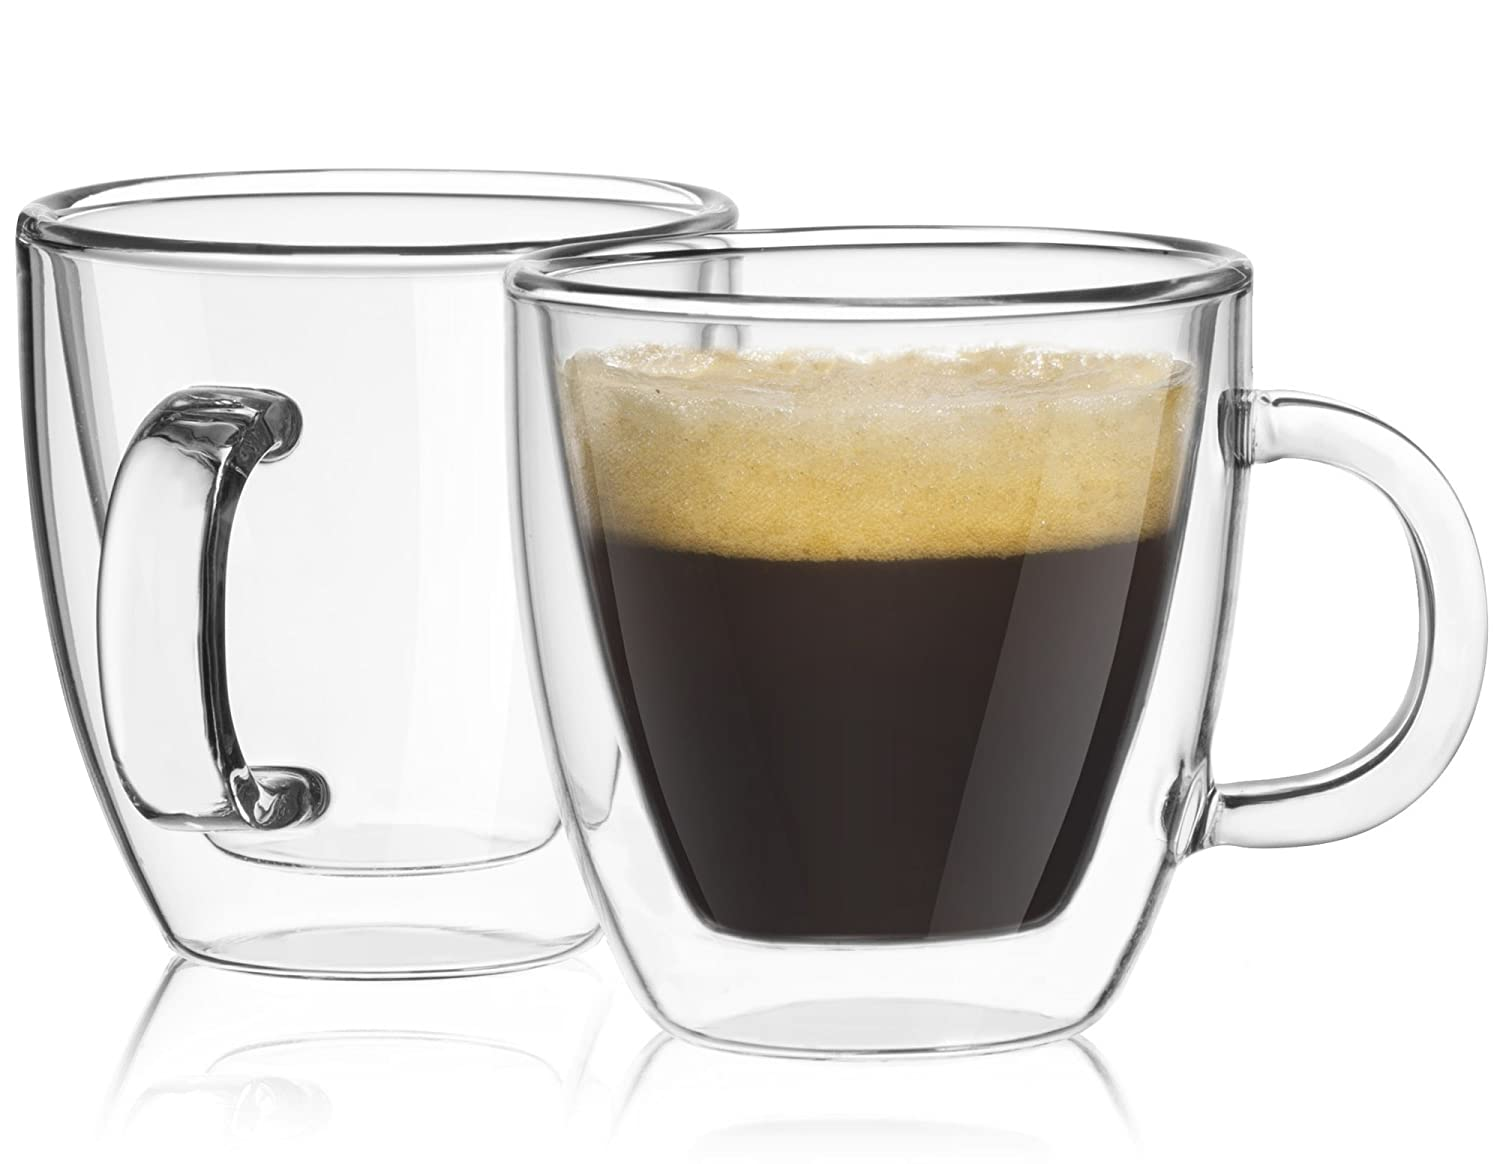 JoyJolt Savor Double Wall Insulated glasses Espresso Mugs Set of 2, 5.4-Ounces